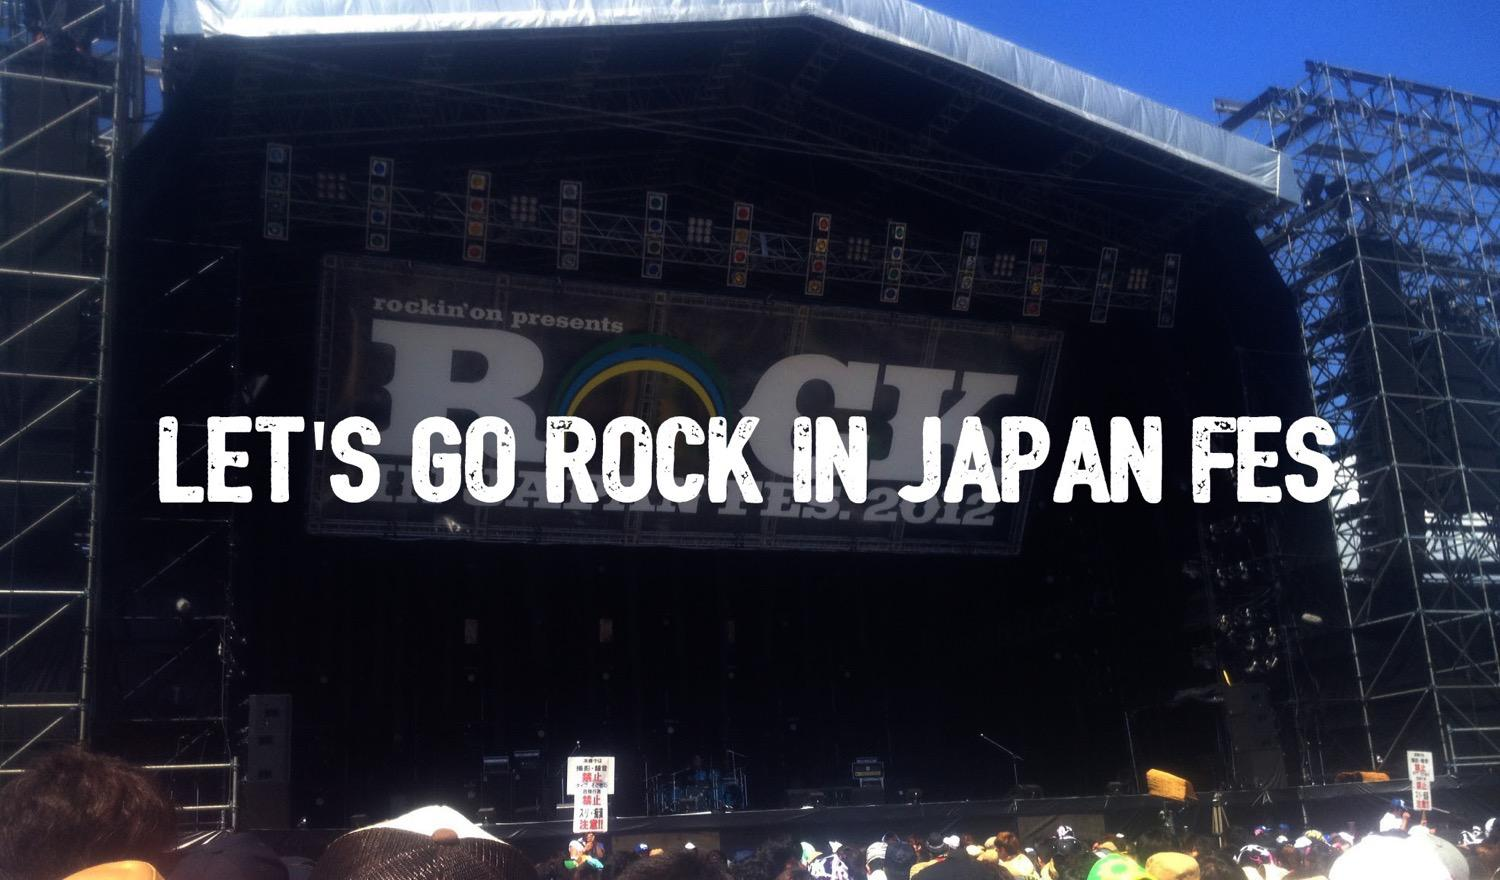 Howtogorockinjapanfes12